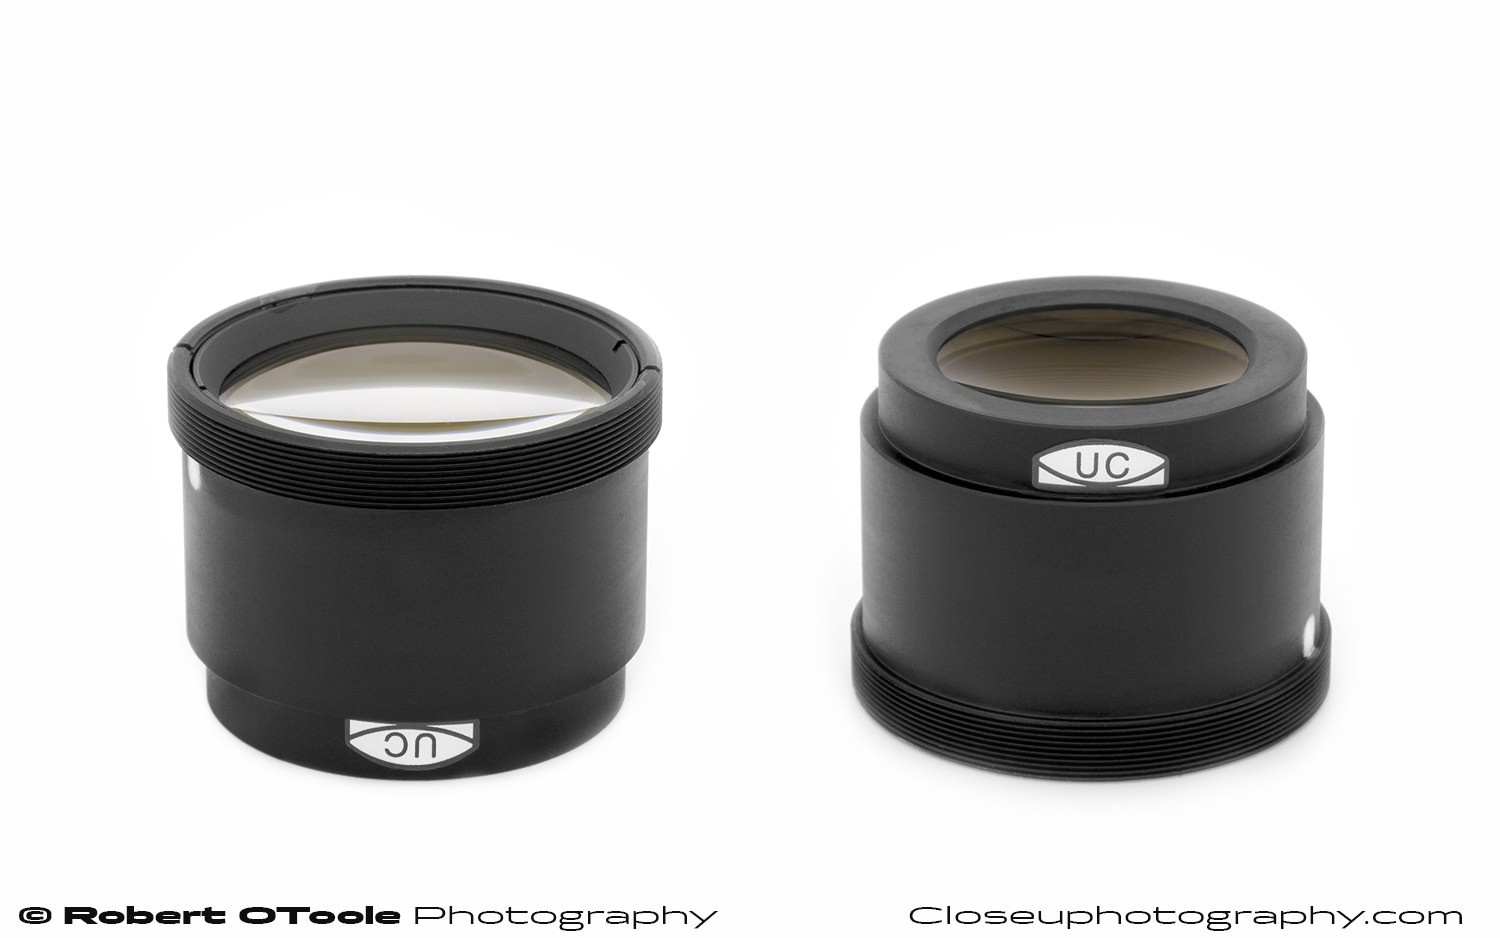 Thorlabs-ITL200-Tube-lens-2-views-Closeuphotography-Robert-OToole-Photography.jpg